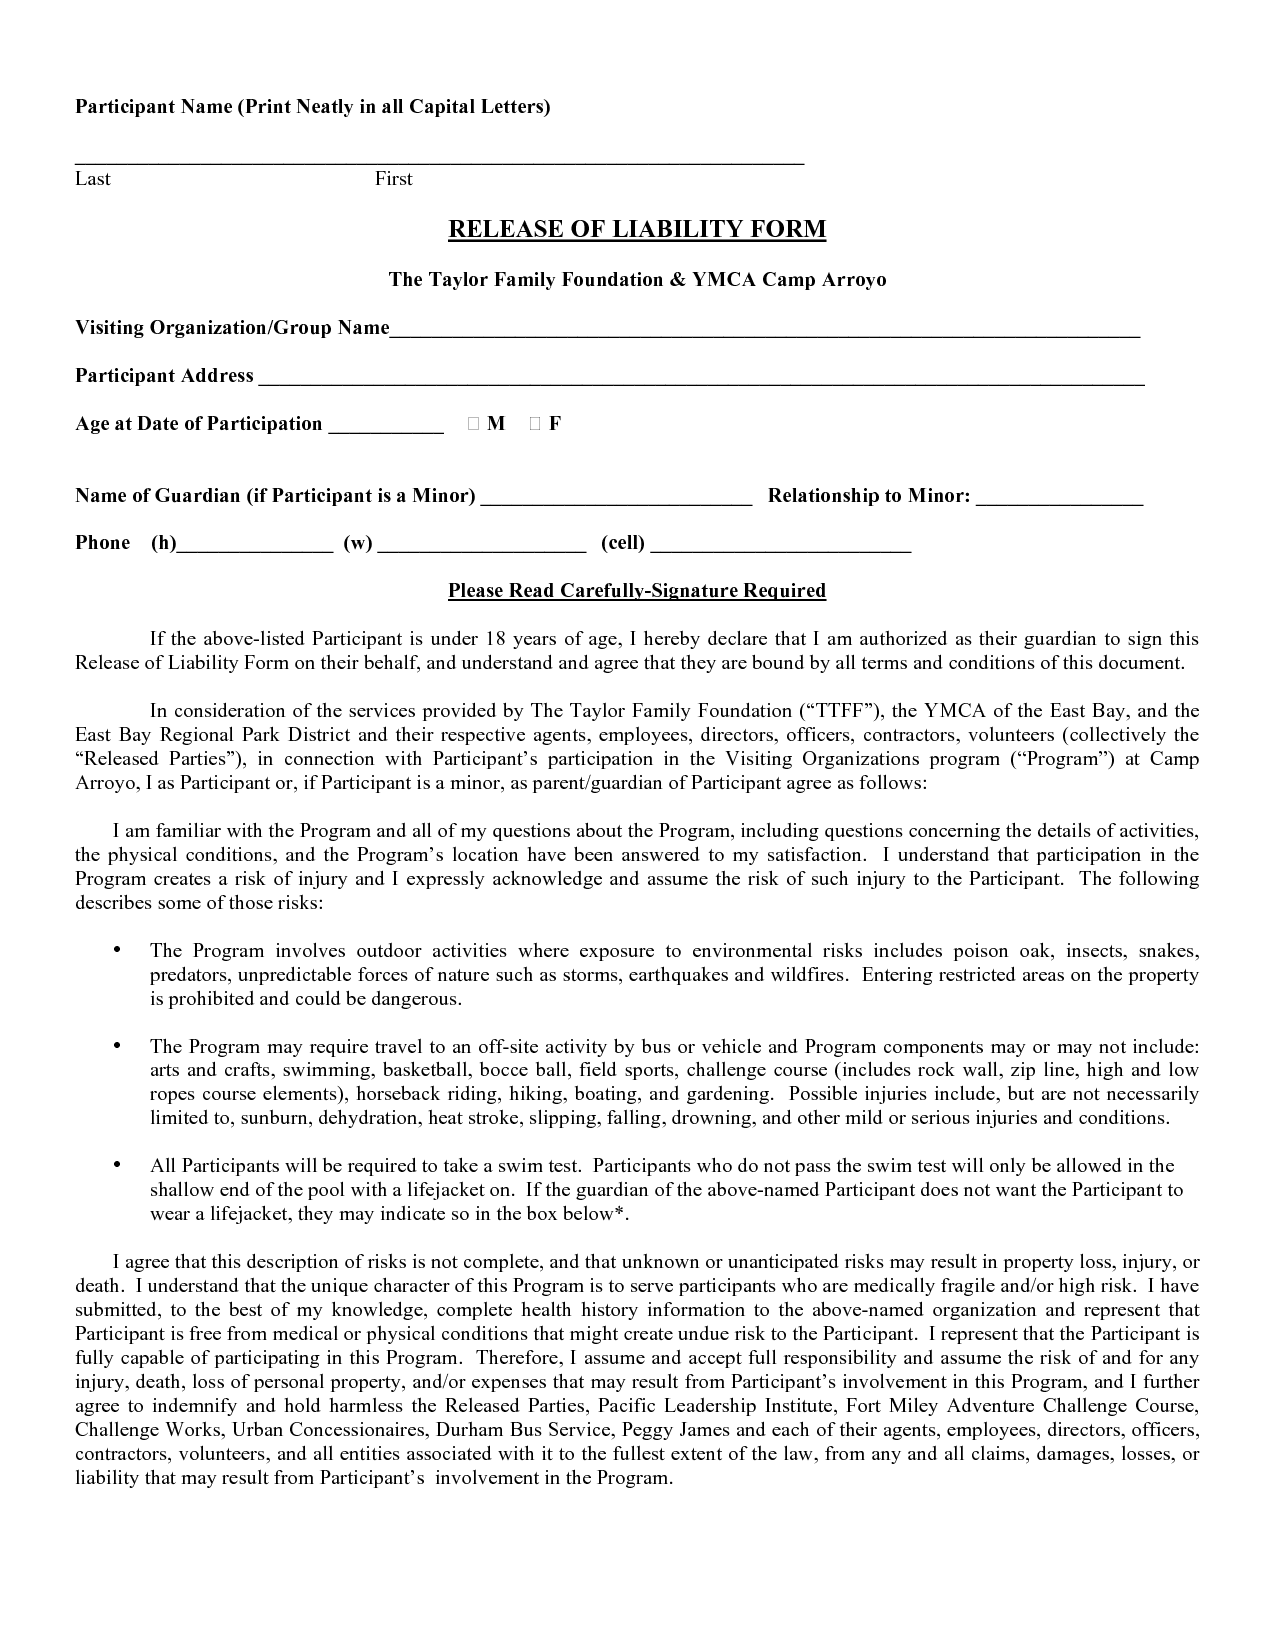 Waiver Of Liability Form Free computer repair sample resume no – Release of Liability Template Free